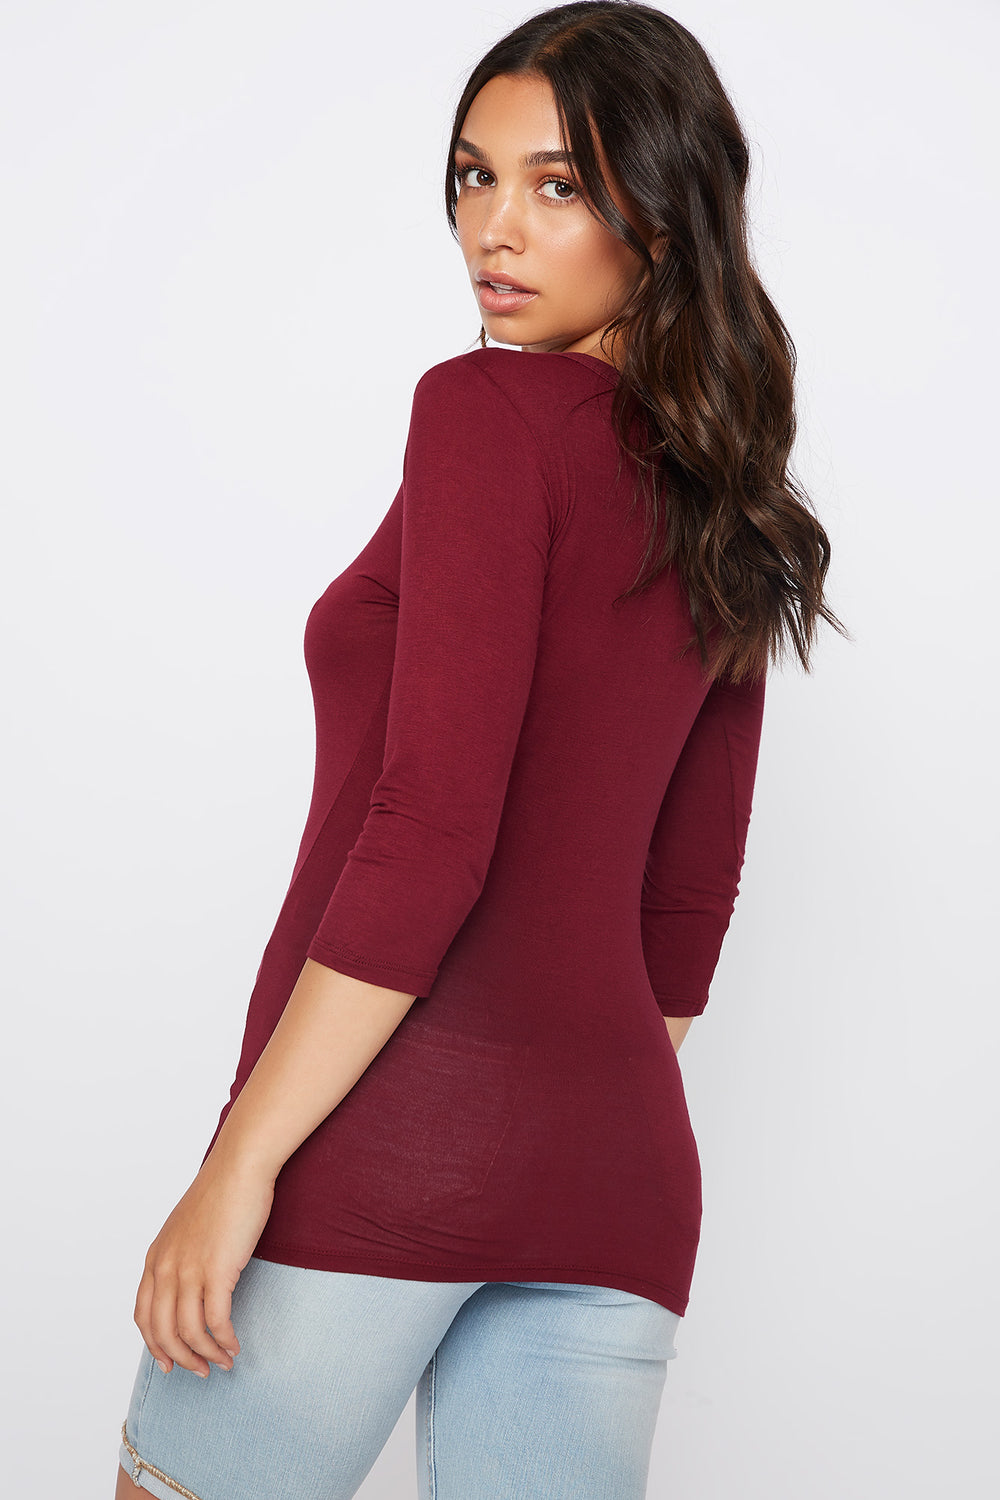 Basic Crew Neck Long Sleeve Shirt Cherry